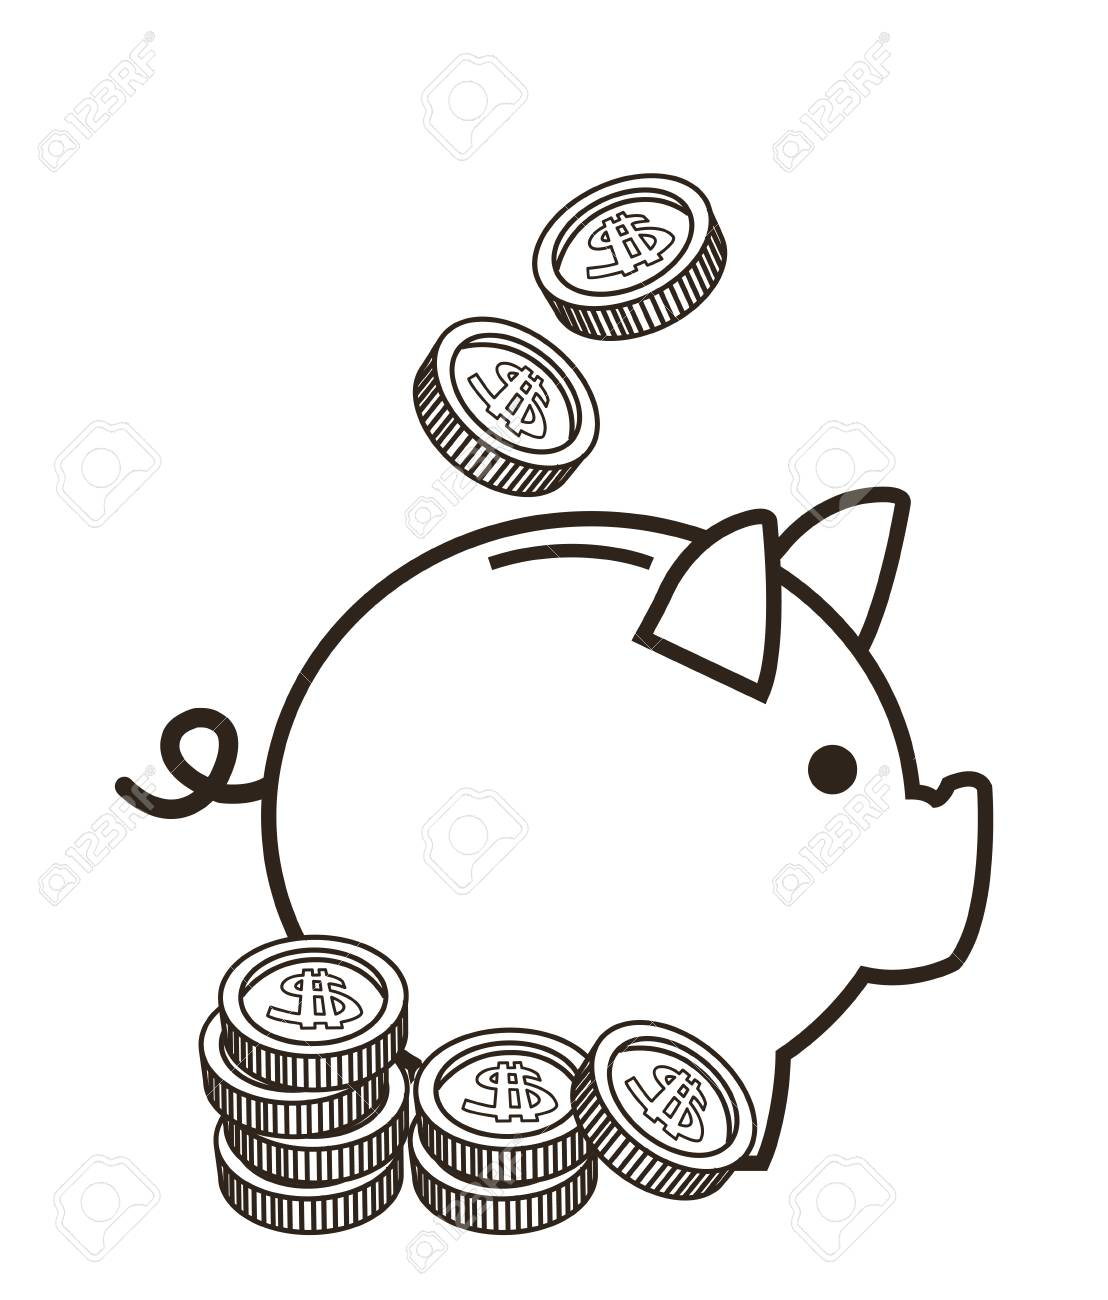 piggy coin money financial sketch icon. Black white isolated...